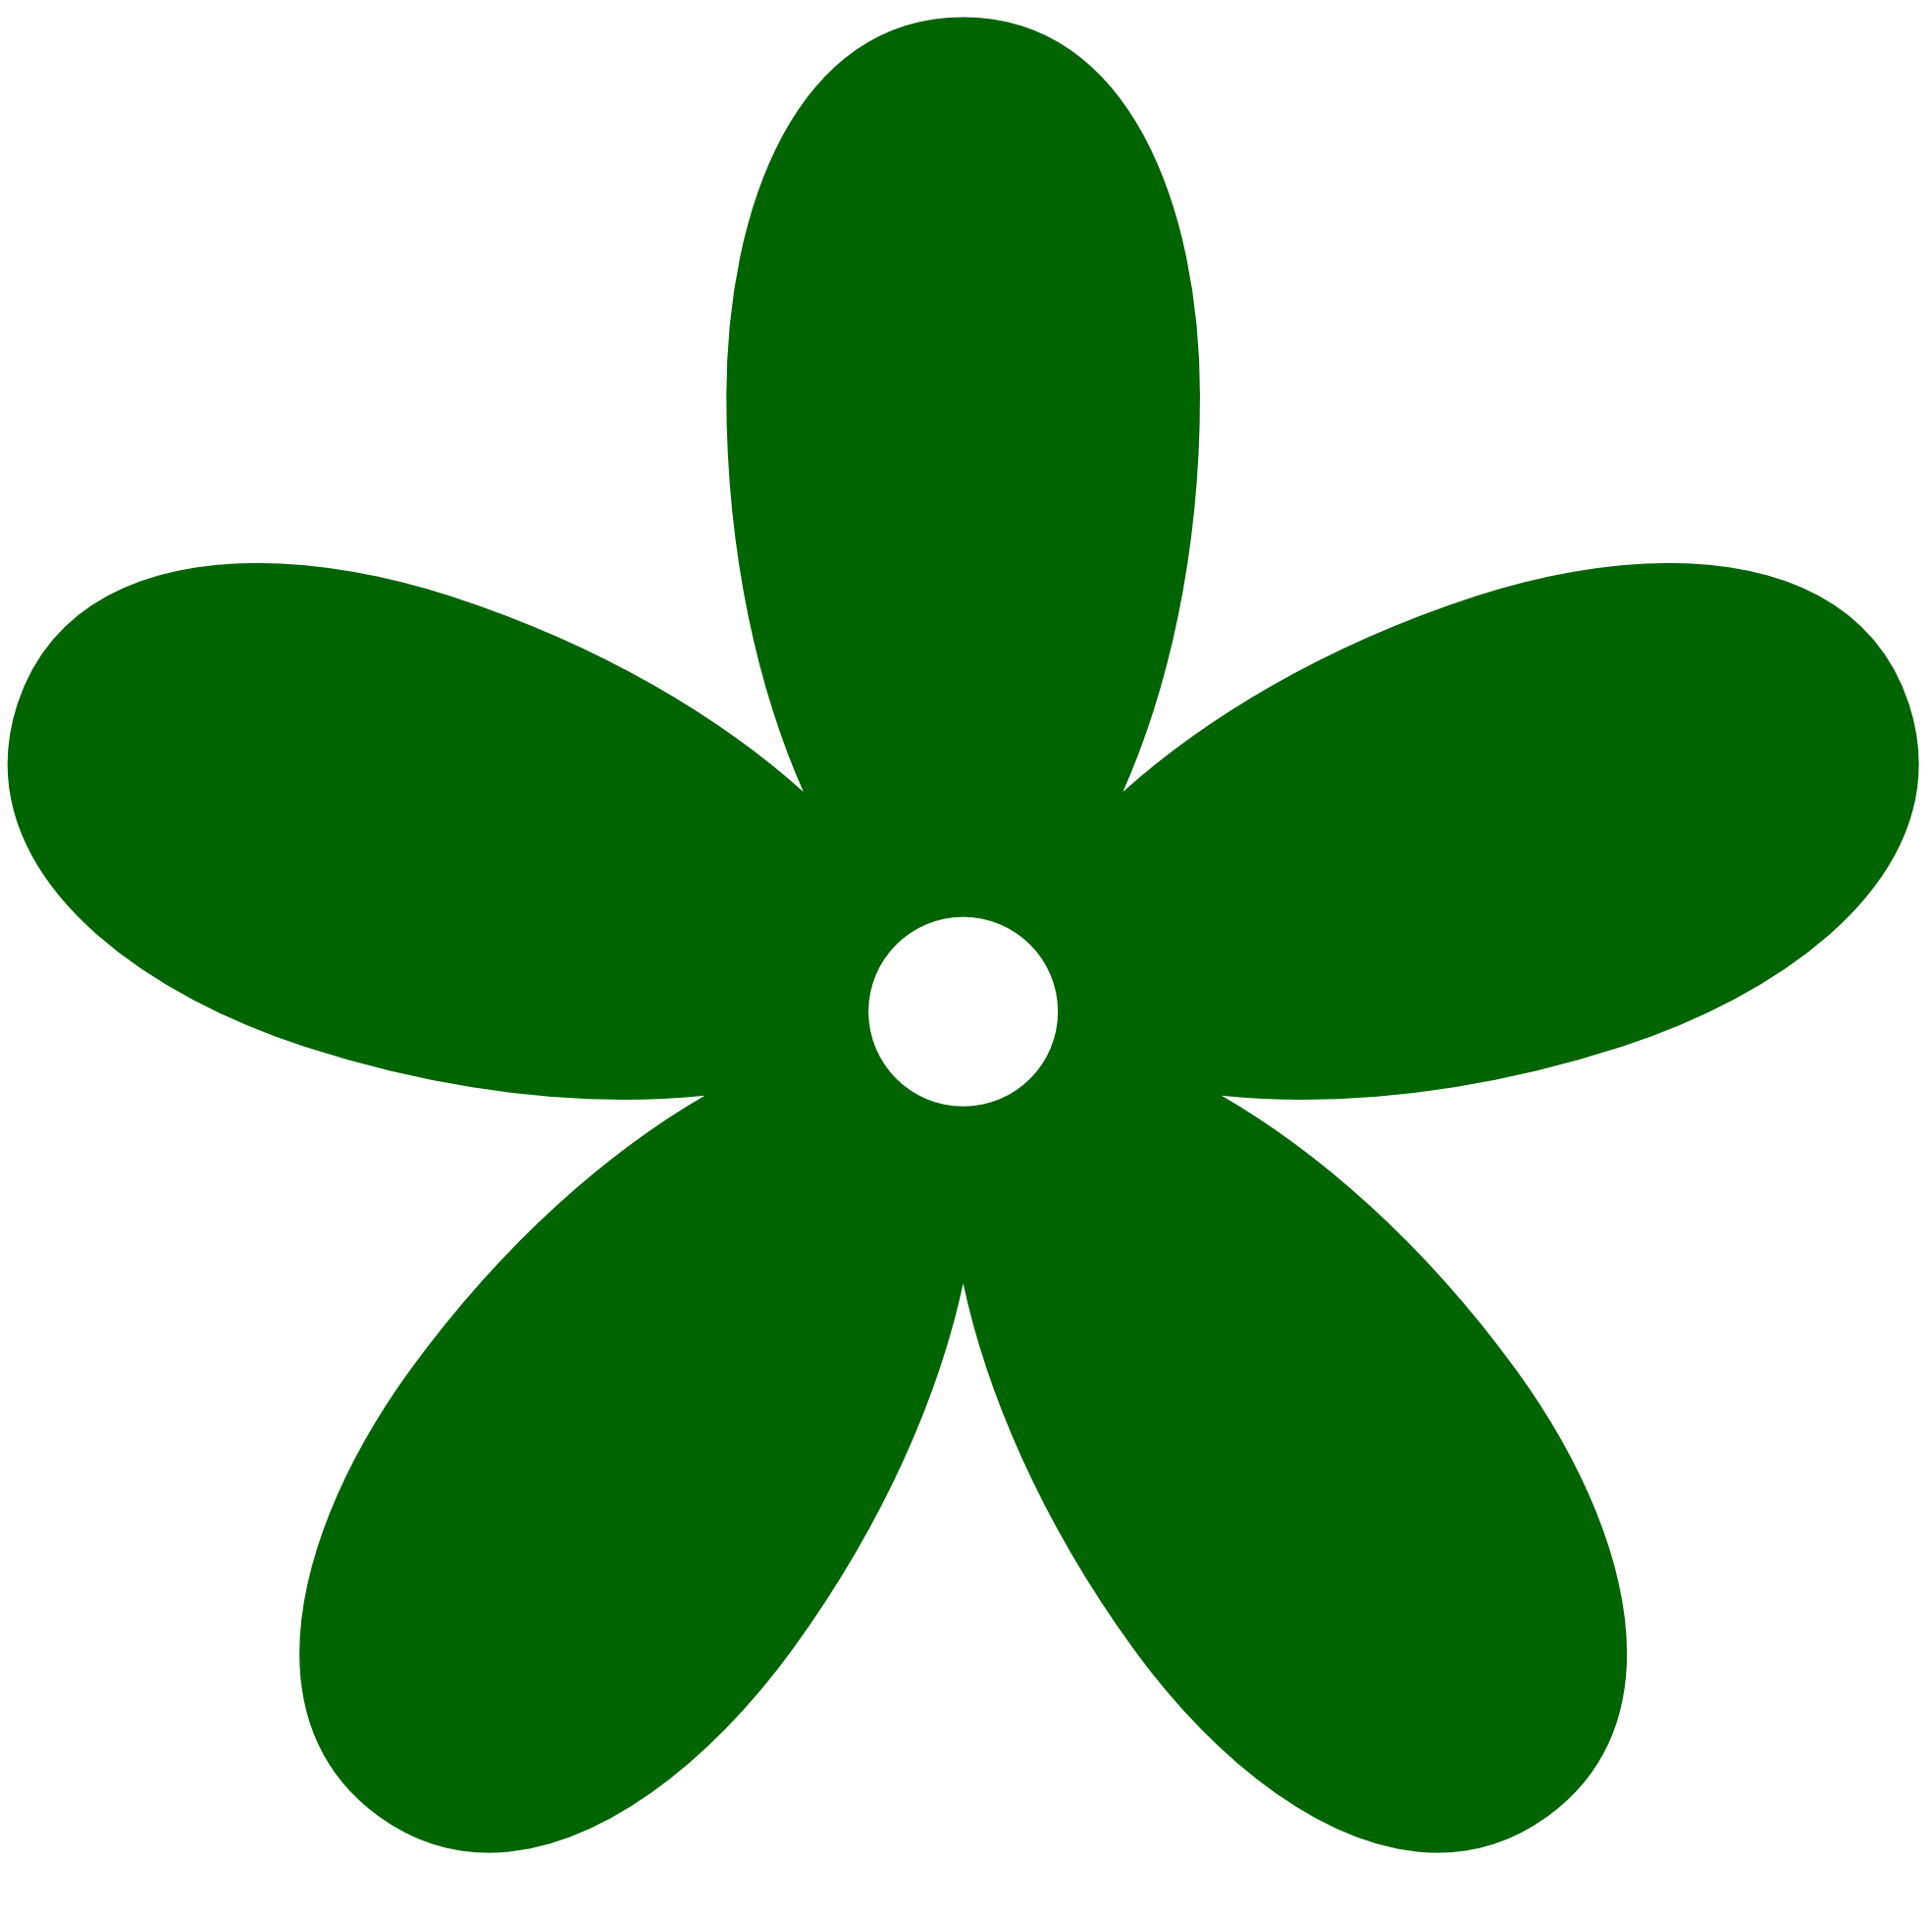 Dark Green Flower Clipart.